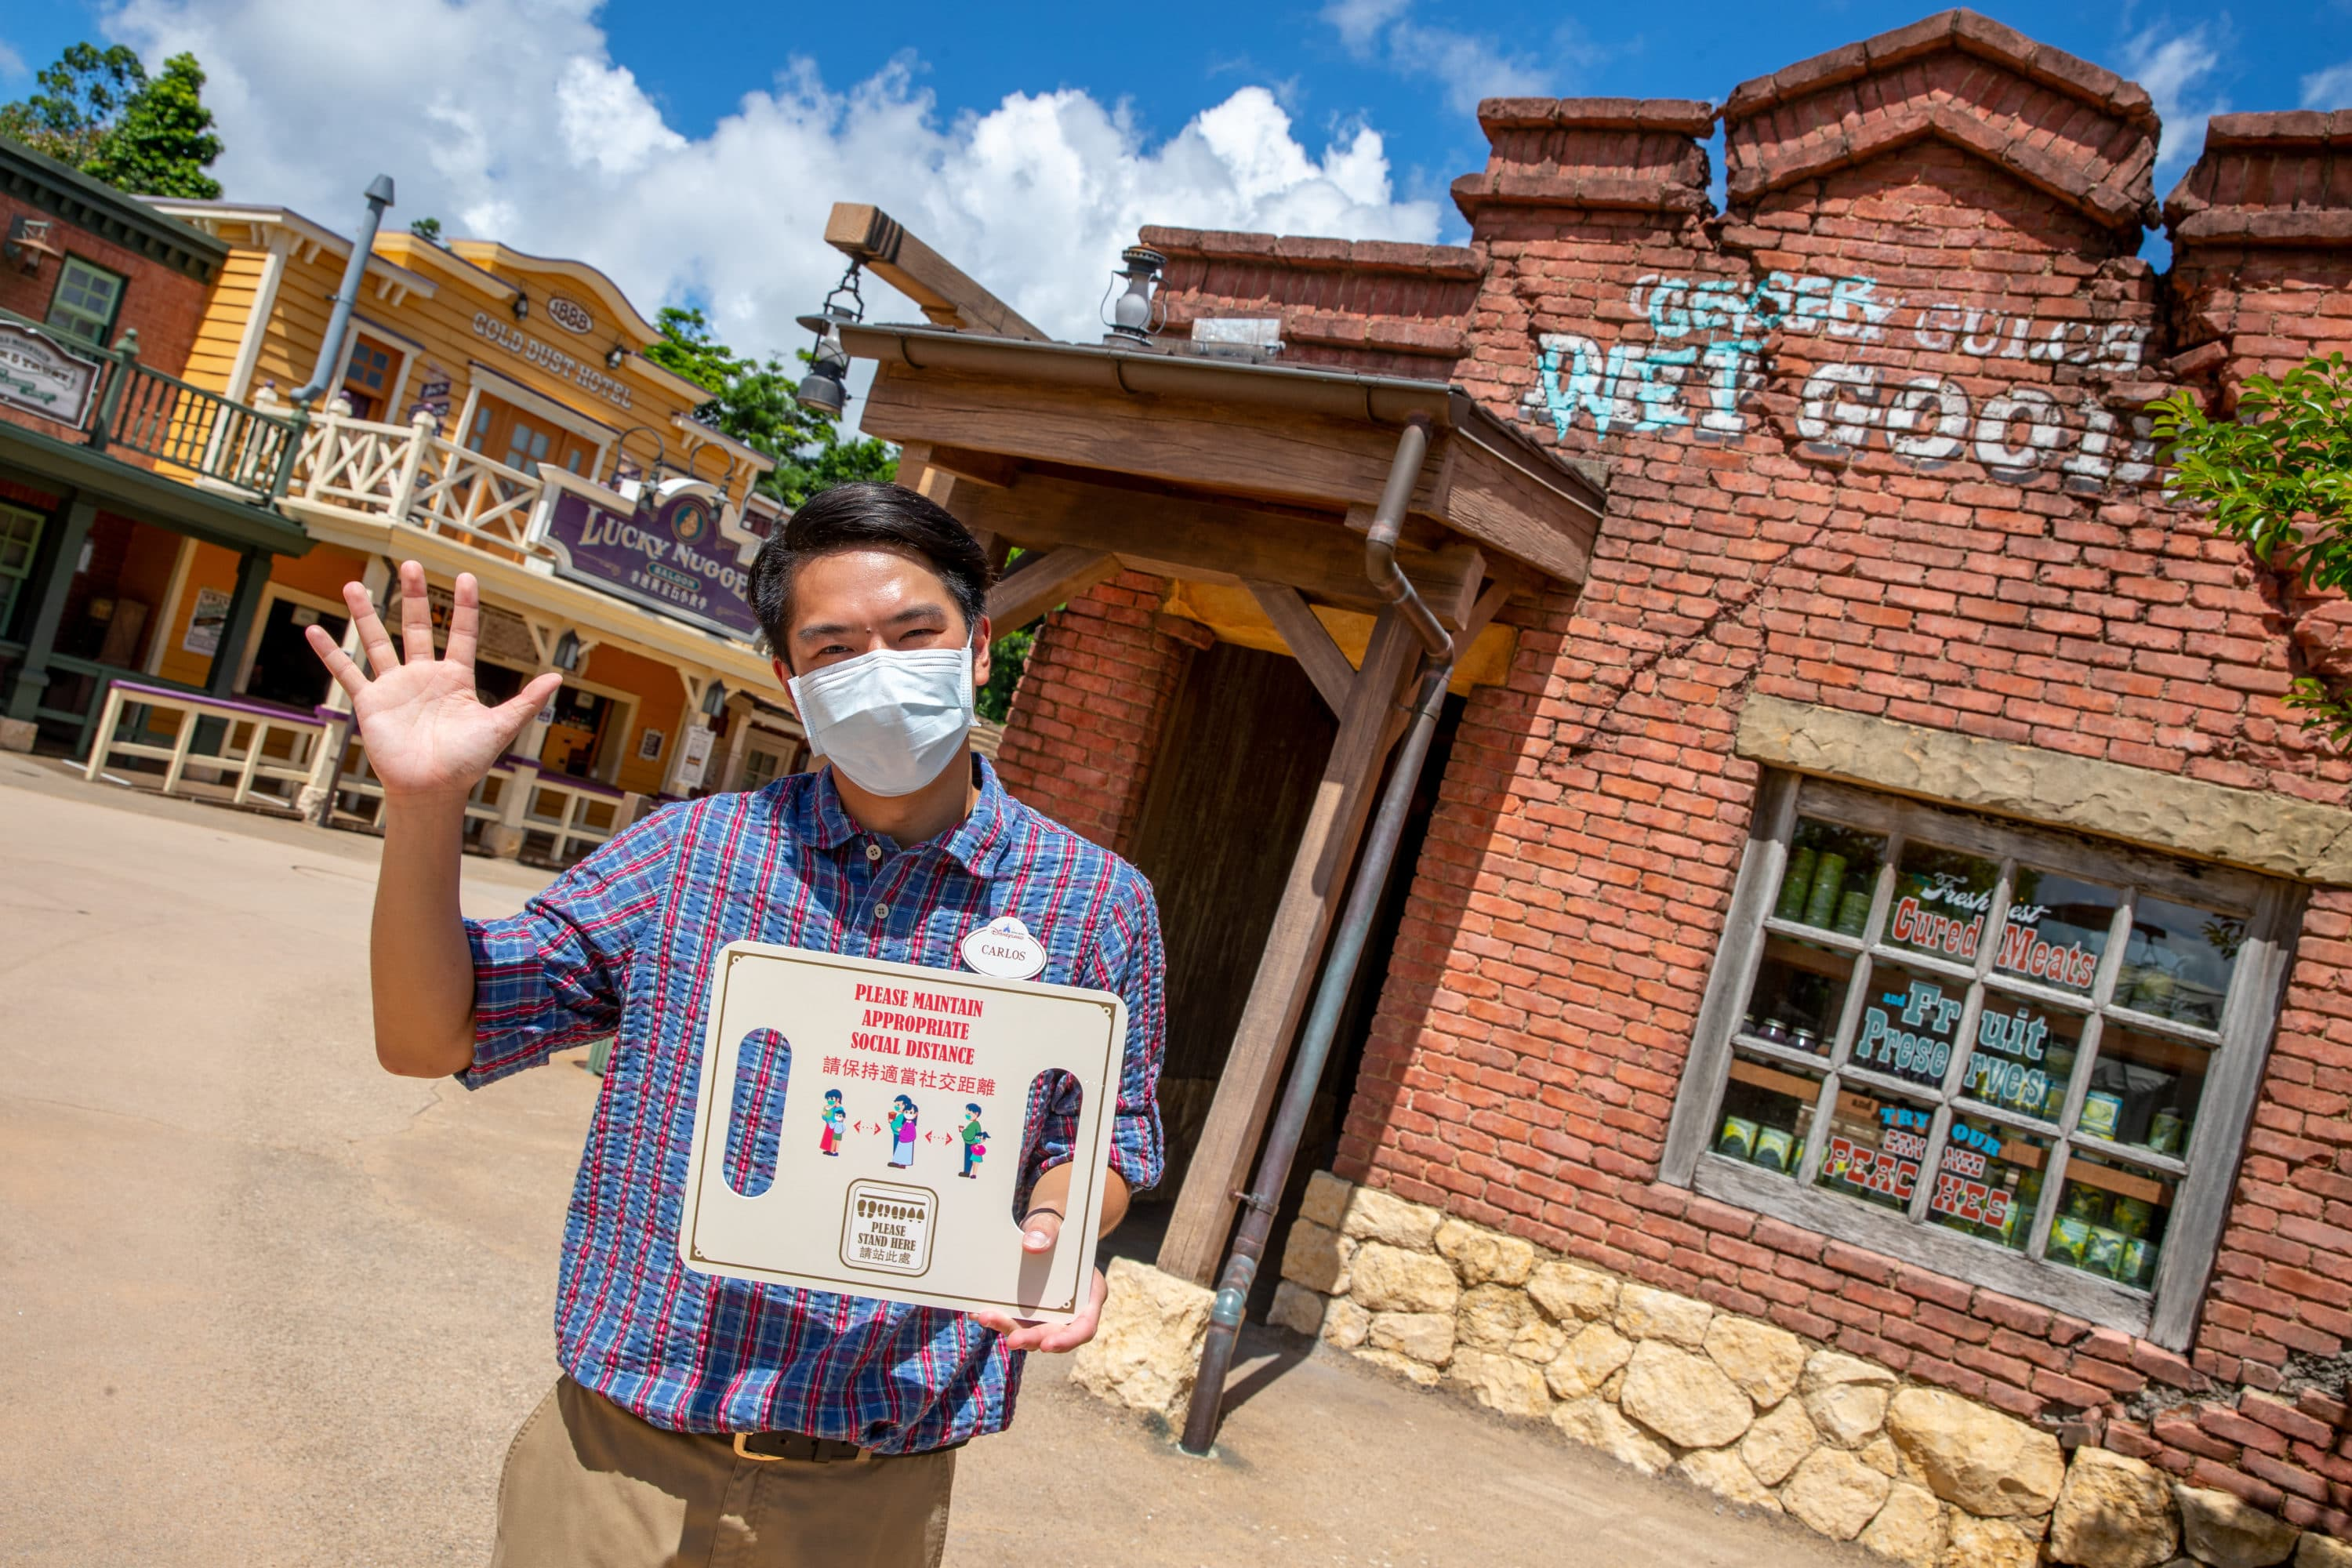 Cast Members welcome guests back to Hong Kong Disneyland and remind people about social distancing.